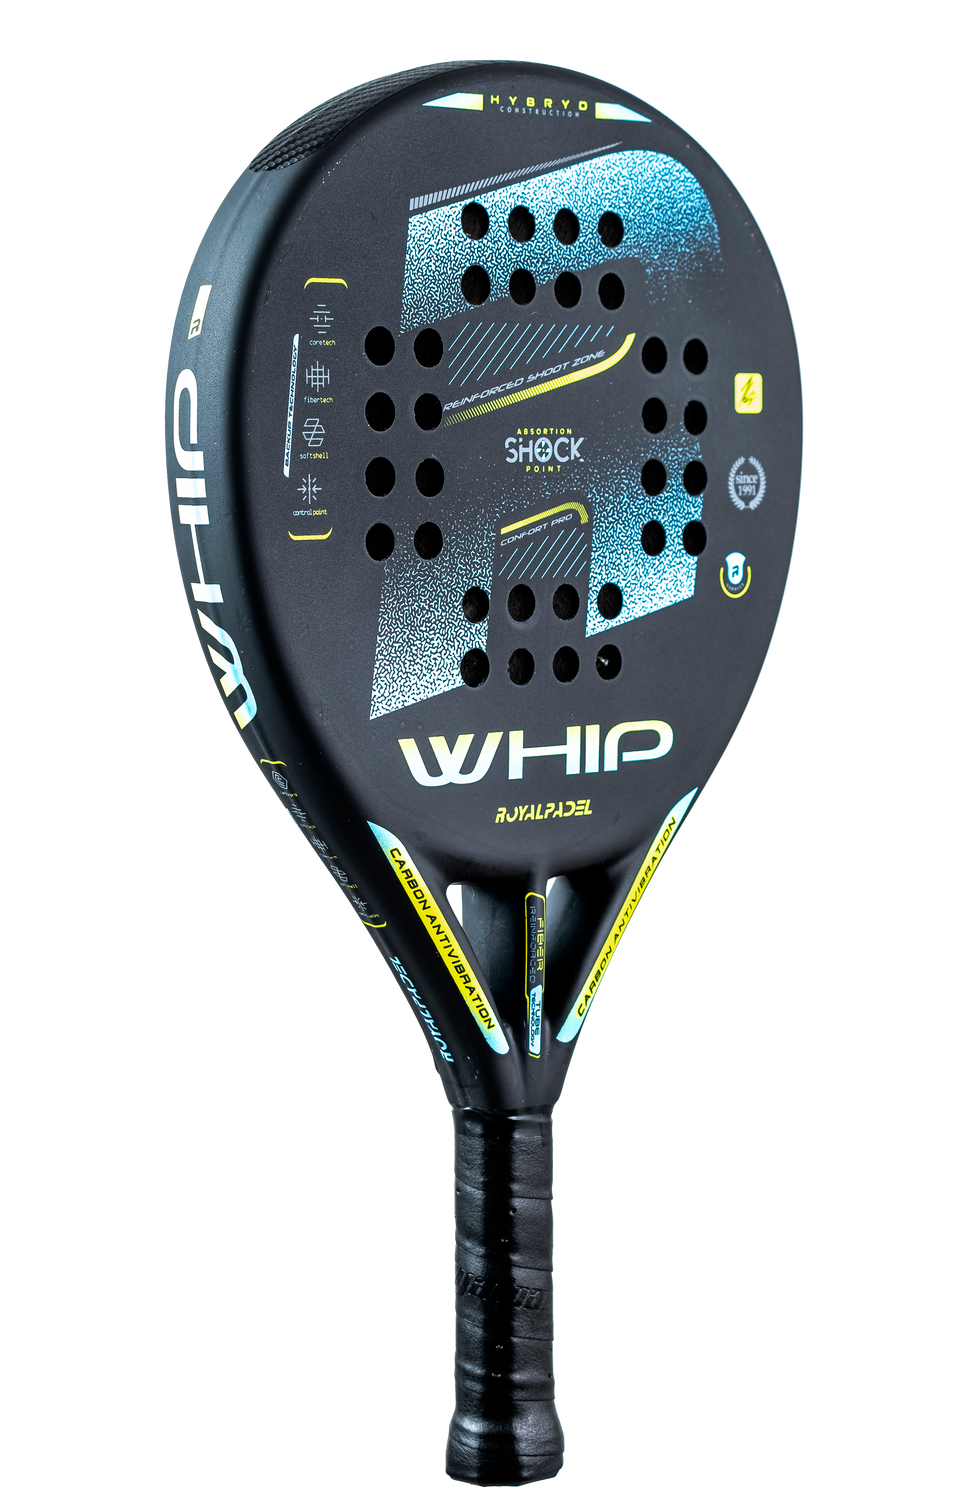 ROYAL PADEL WHIP 790 HYBRID 2021